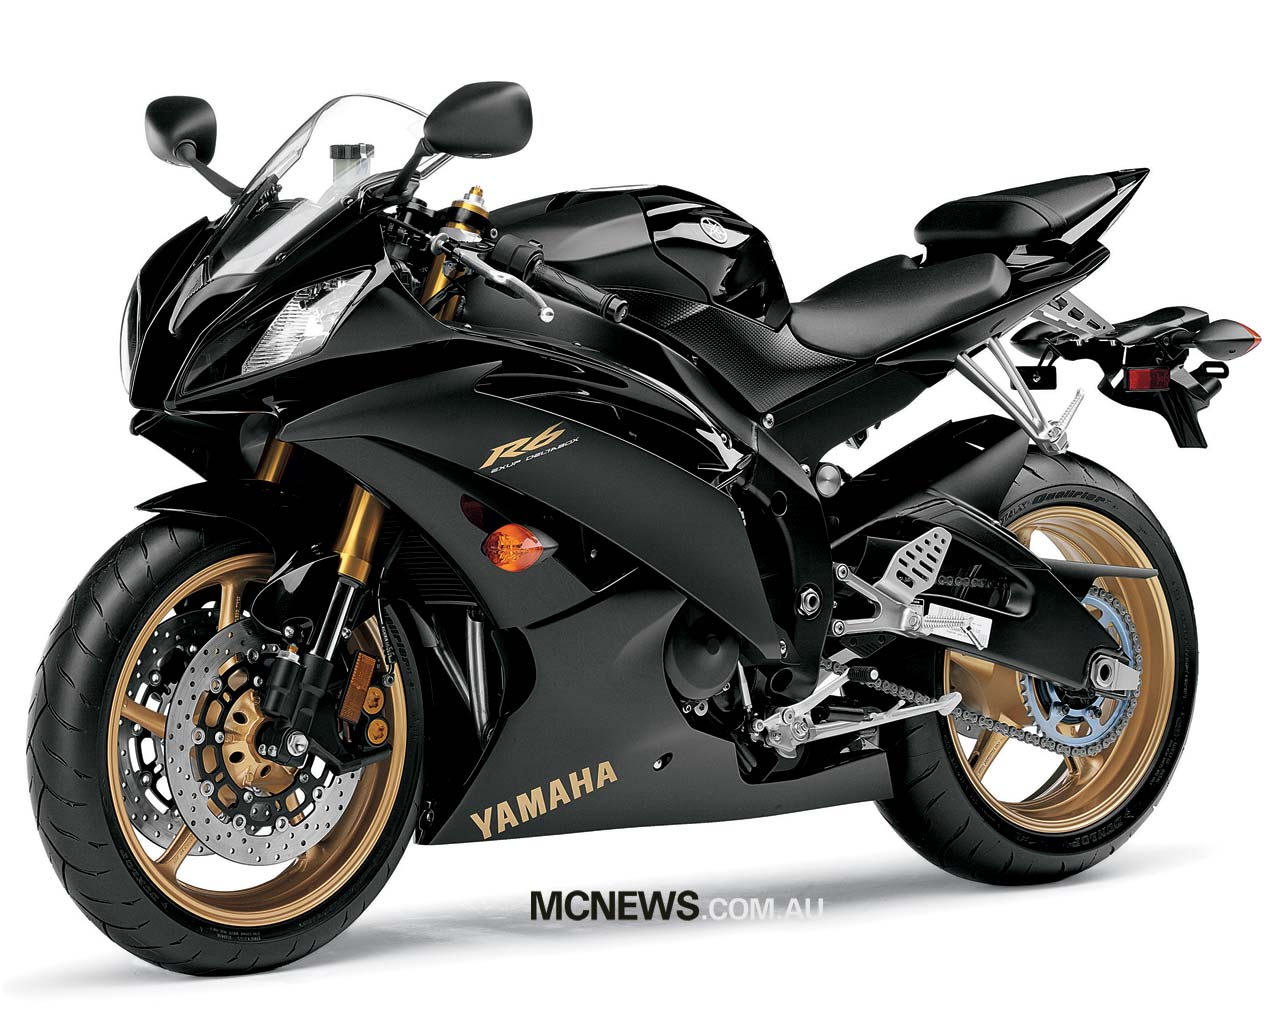 AUTOMOTIVE WALLPAPER Yamaha YZF R6 Wallpaper 1280x1024